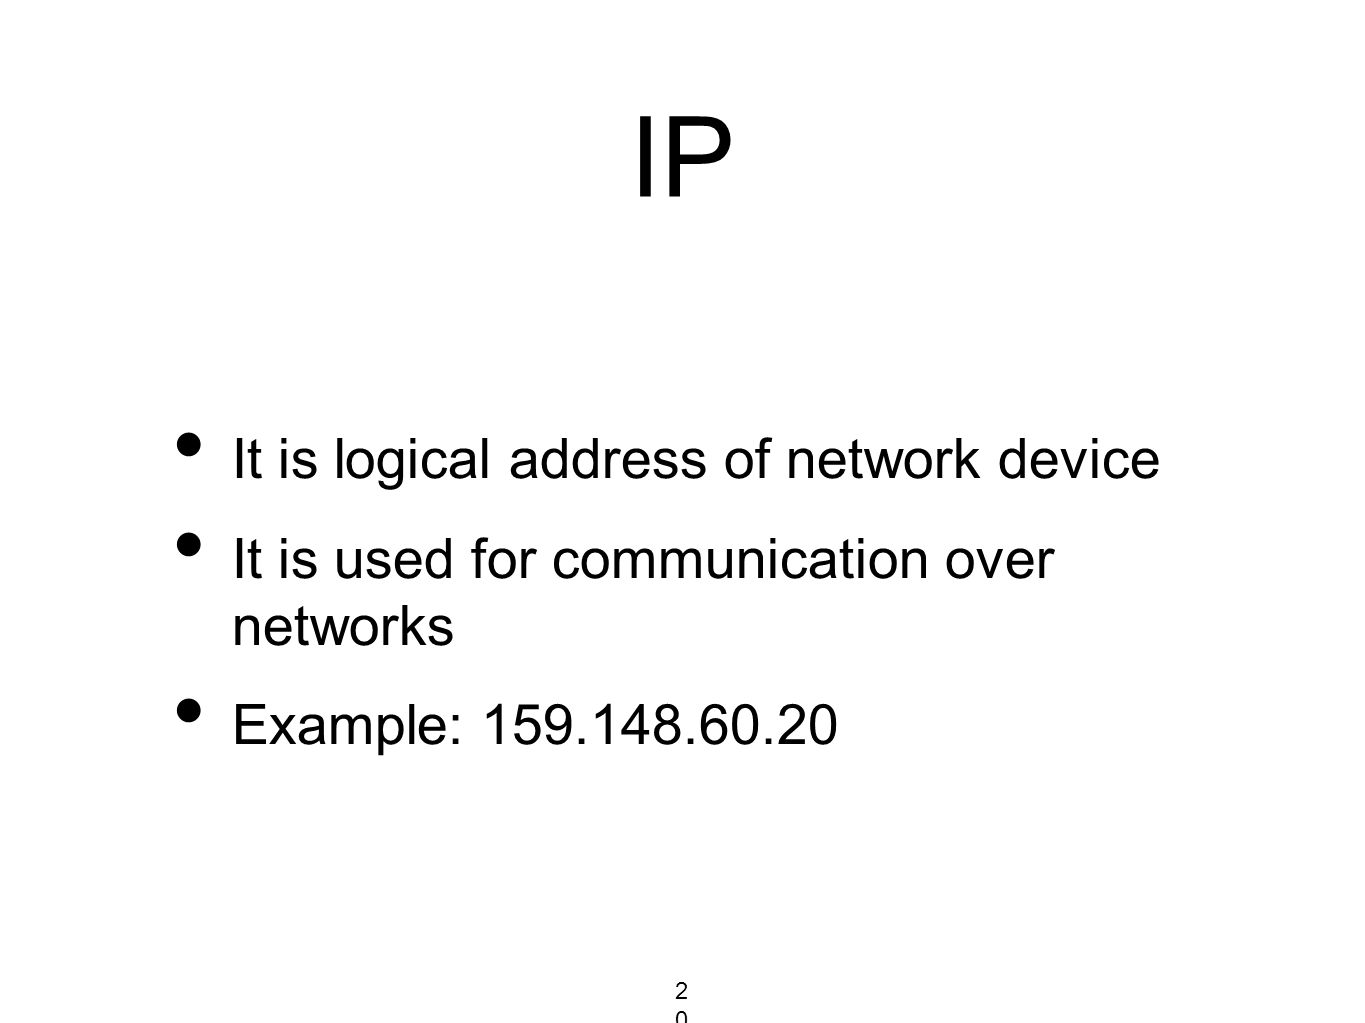 IP It is logical address of network device It is used for communication over networks Example: 159.148.60.20 20